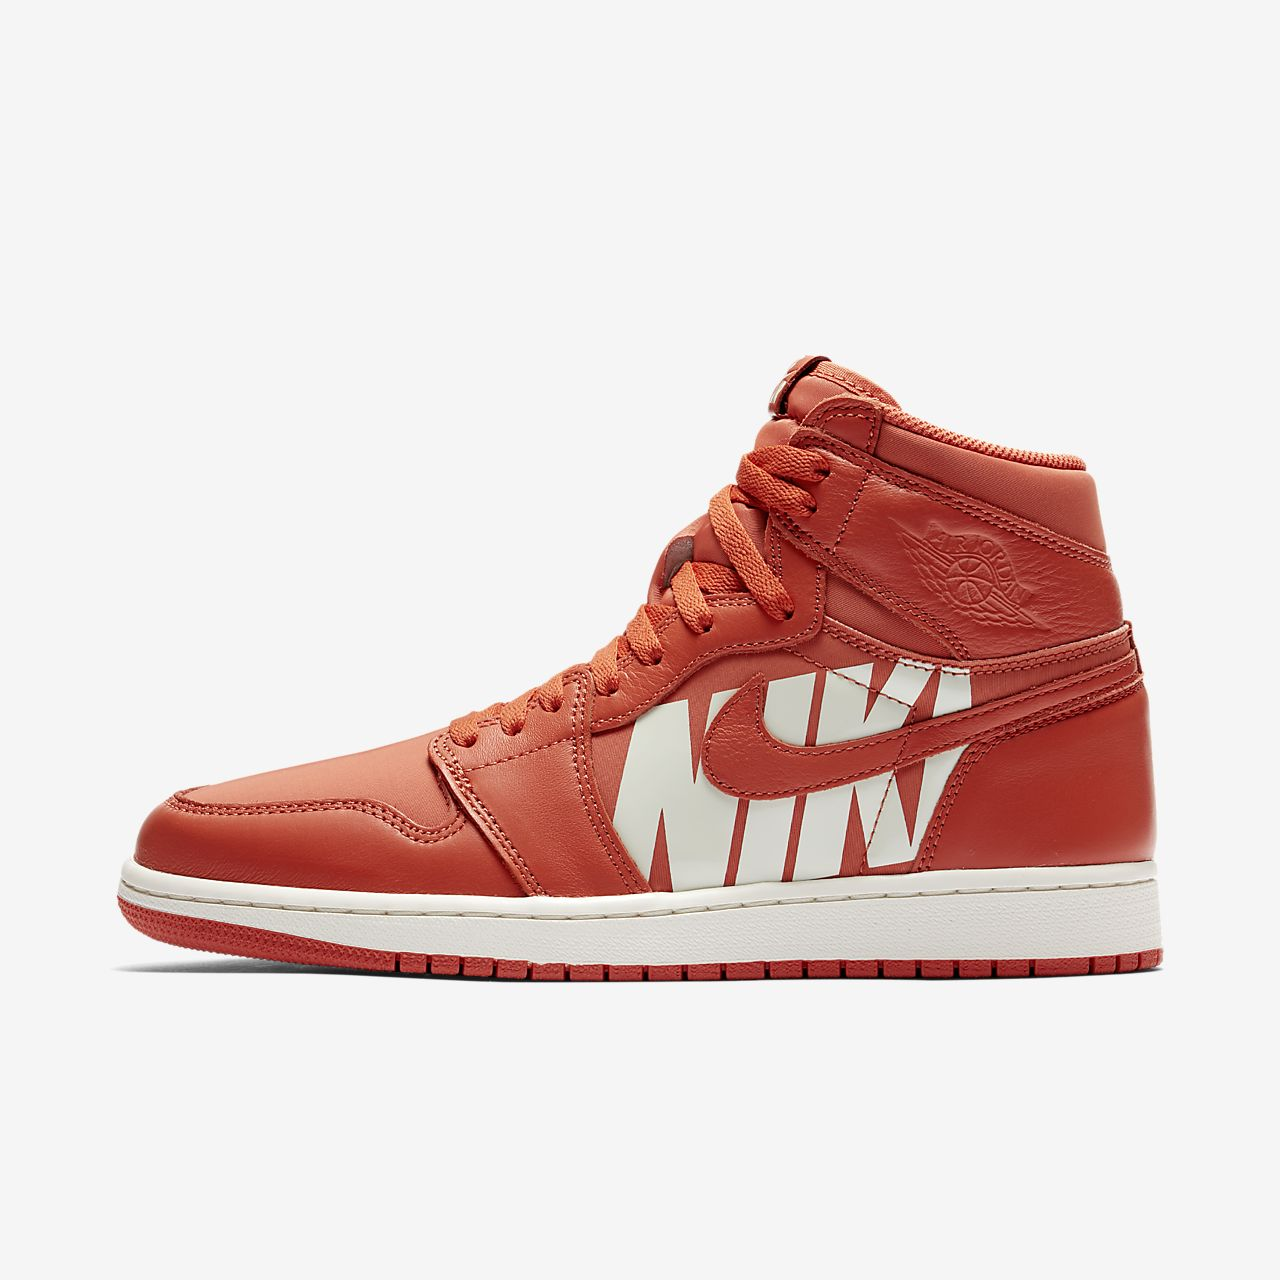 4a71ef43195c Air Jordan 1 Retro High OG Shoe. Nike.com NZ